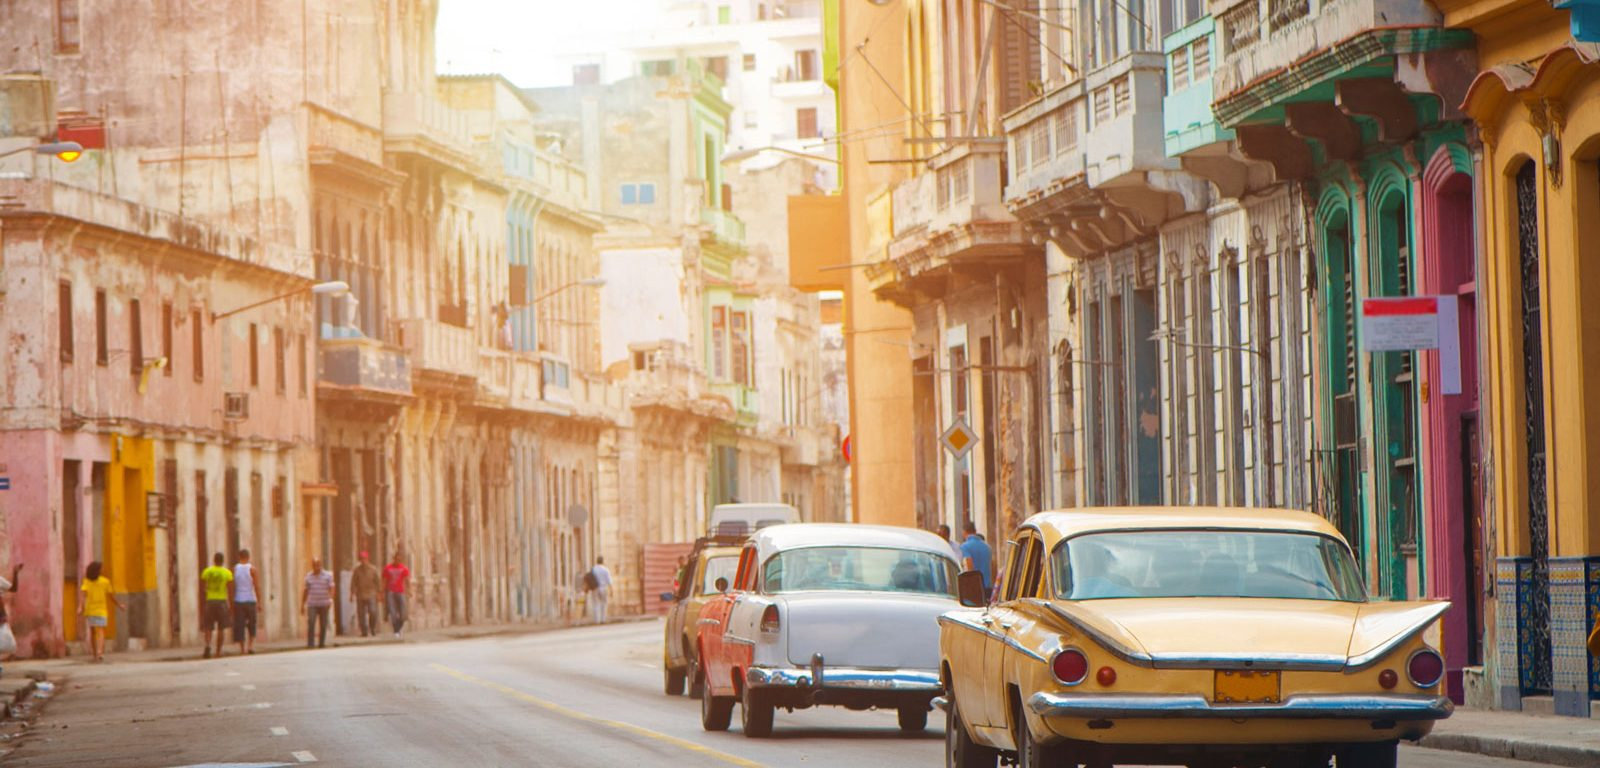 Incentive Travel to Cuba: Challenges & Adventures